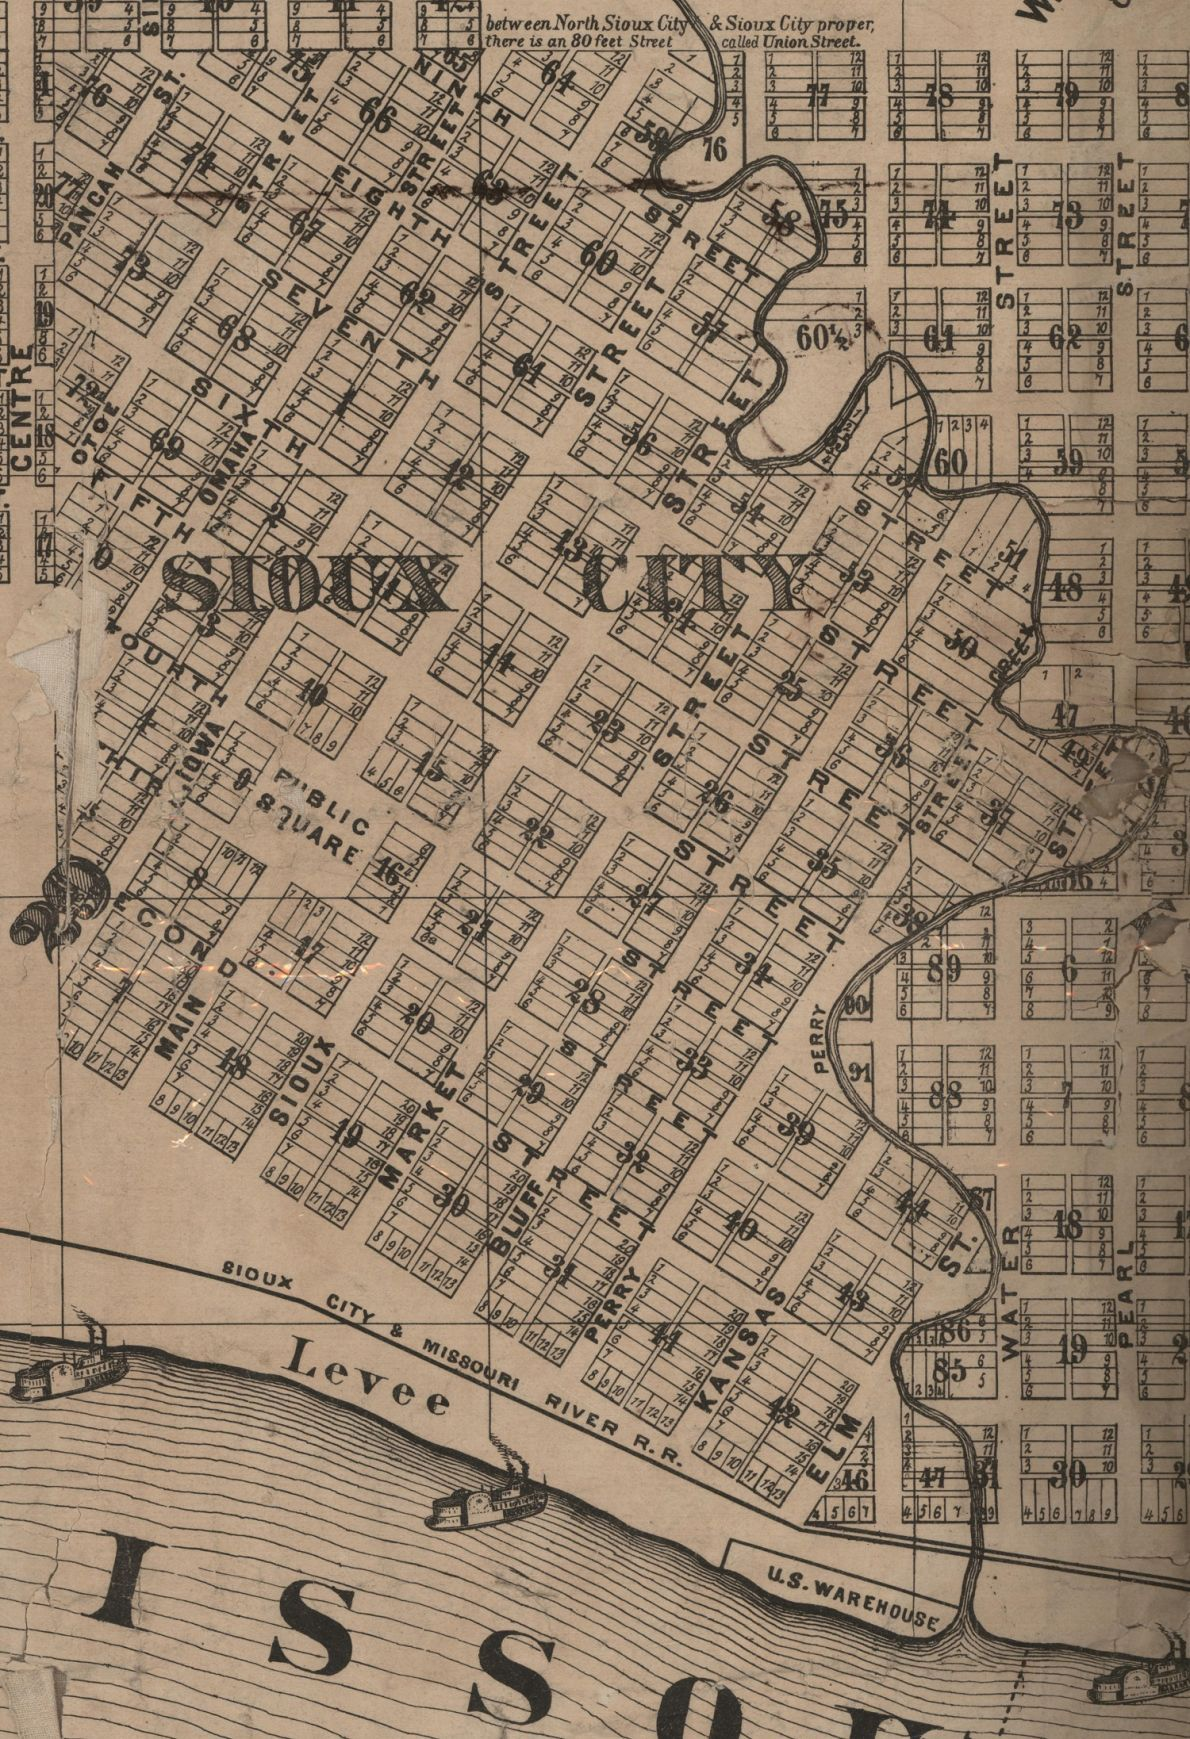 Sioux City in 1870 Street wise A